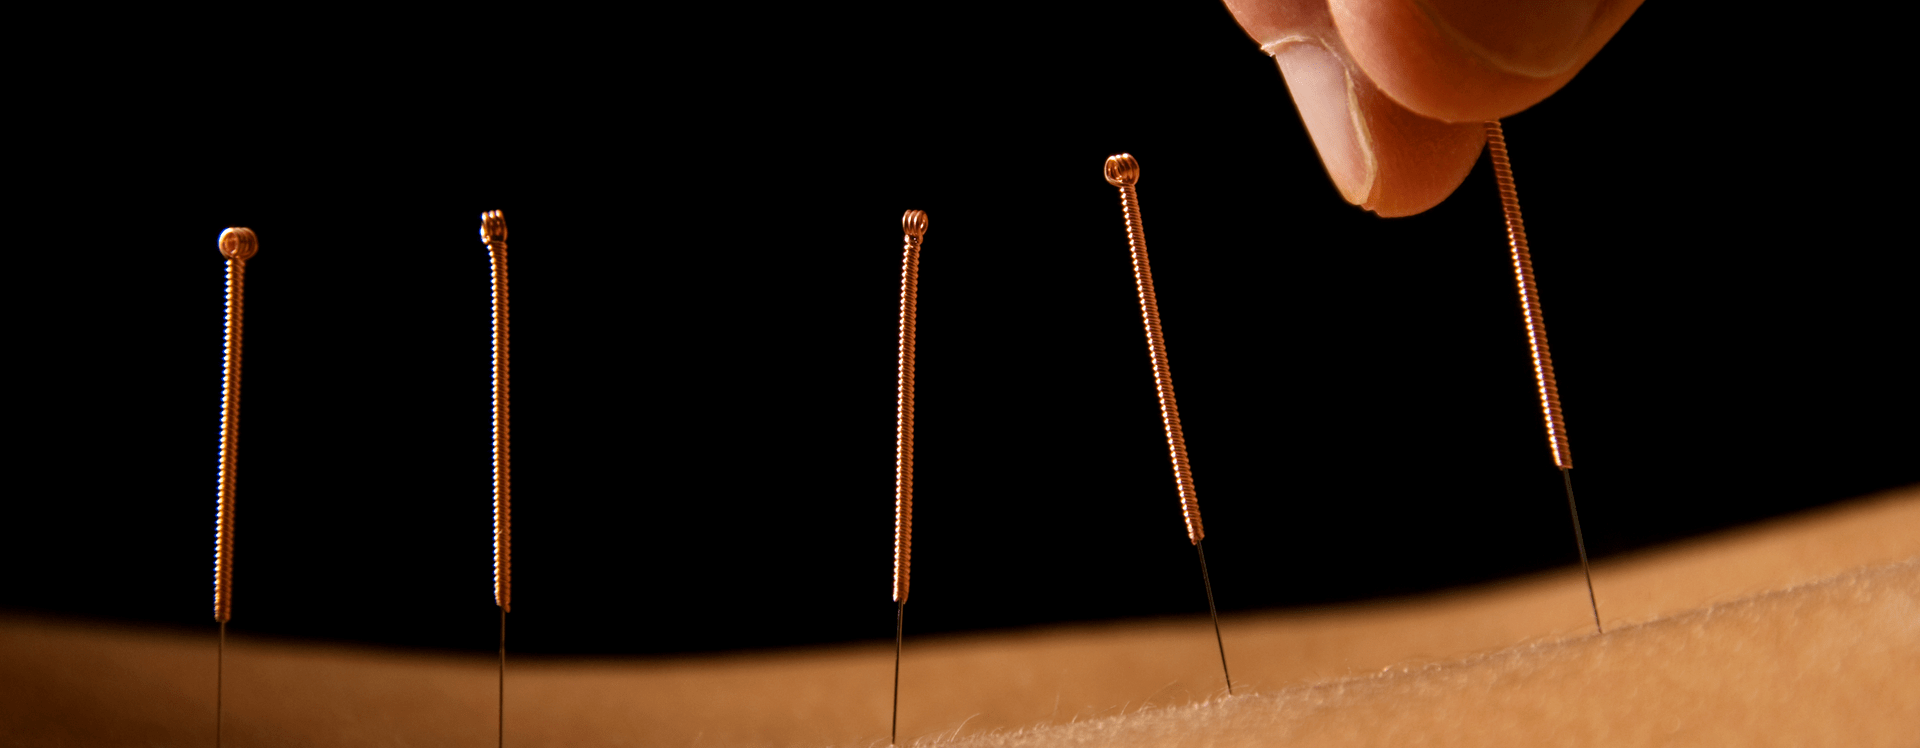 Acupuncture in Ware and Letchworth Garden City.